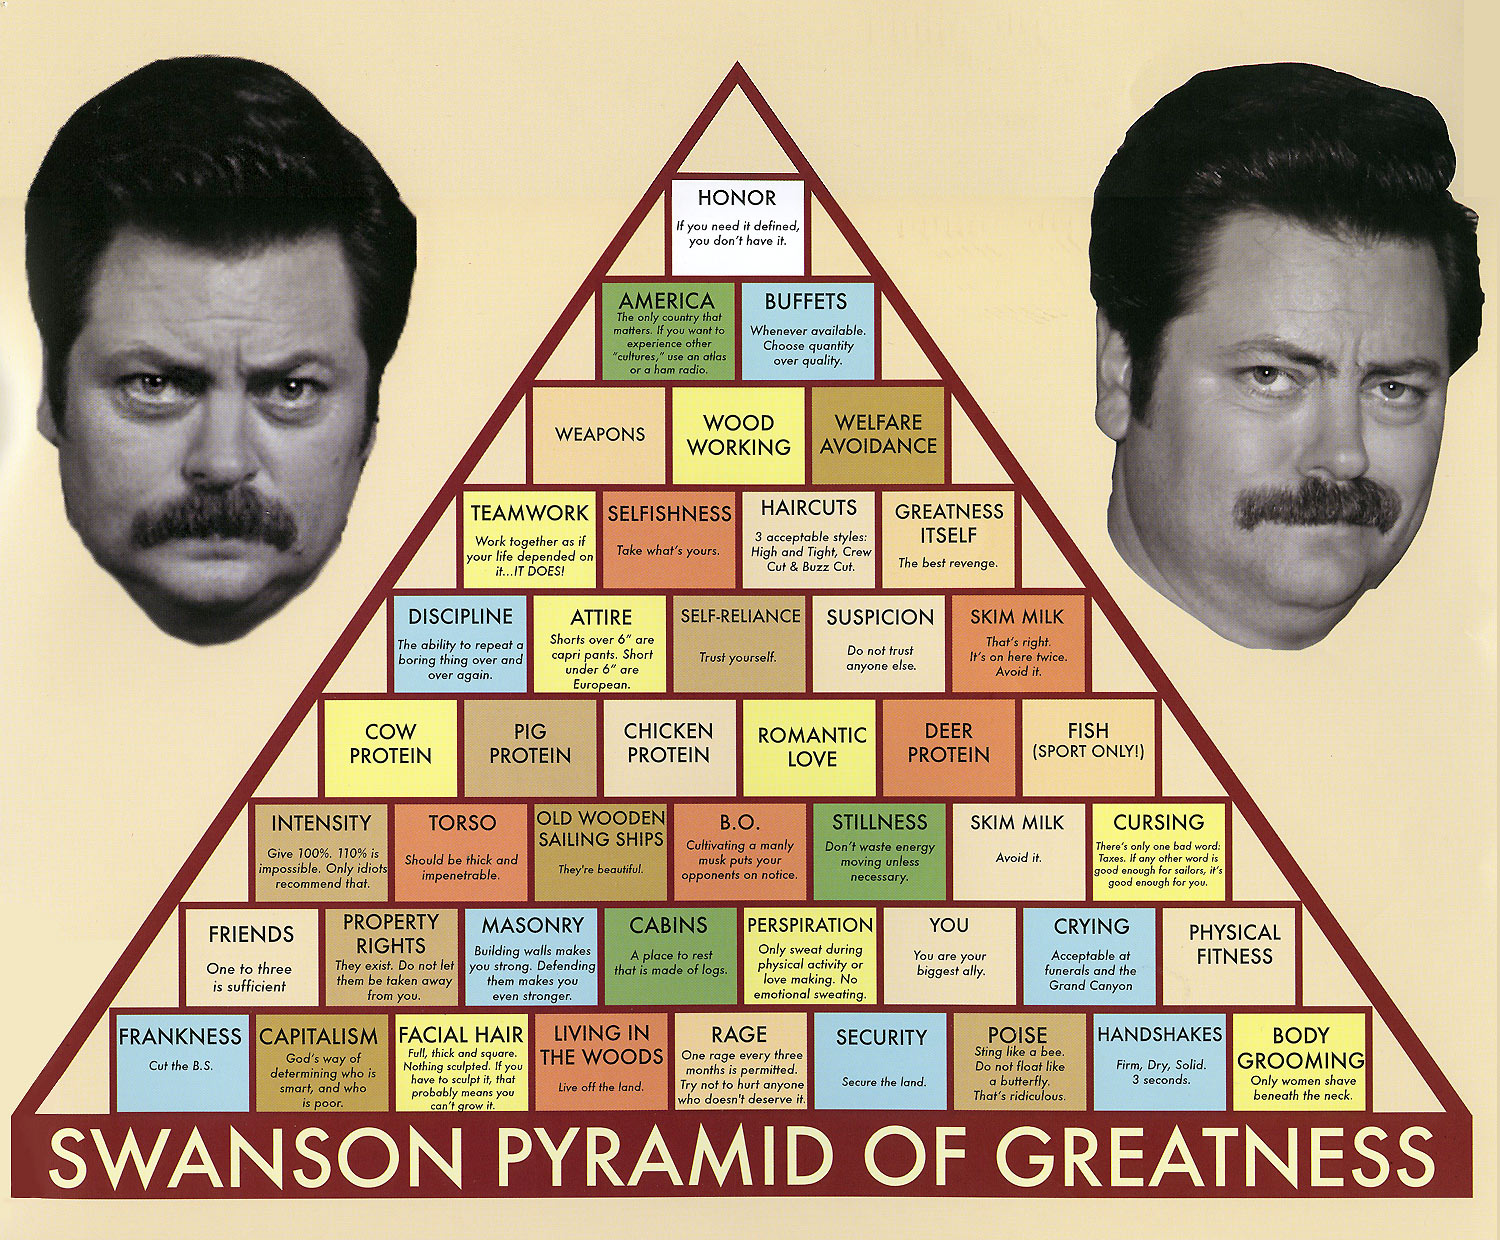 Swanson_Pyramid_of_Greatness.jpg